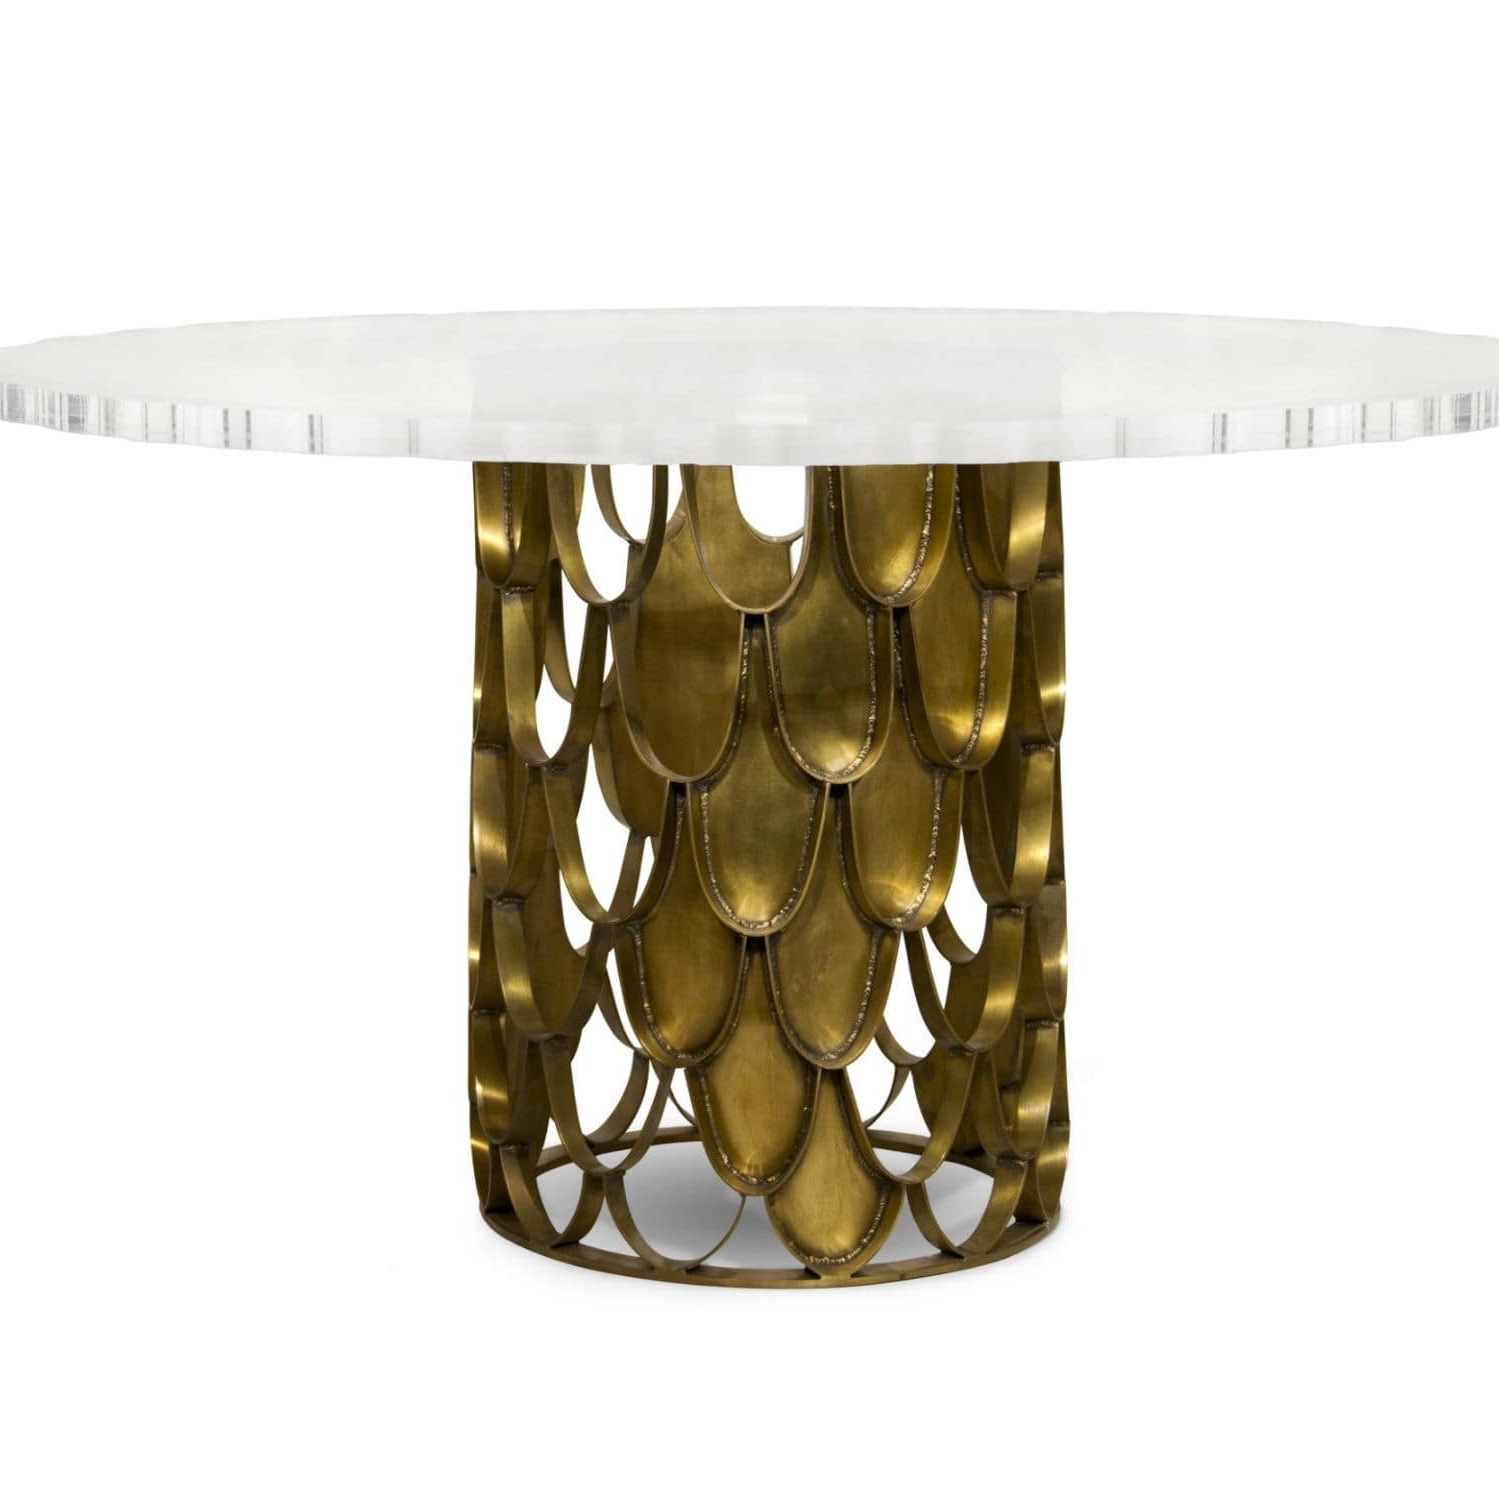 Current Contemporary Dining Table / Brass / Acrylic / Round – Koi – Brabbu For Acrylic Round Dining Tables (View 22 of 25)